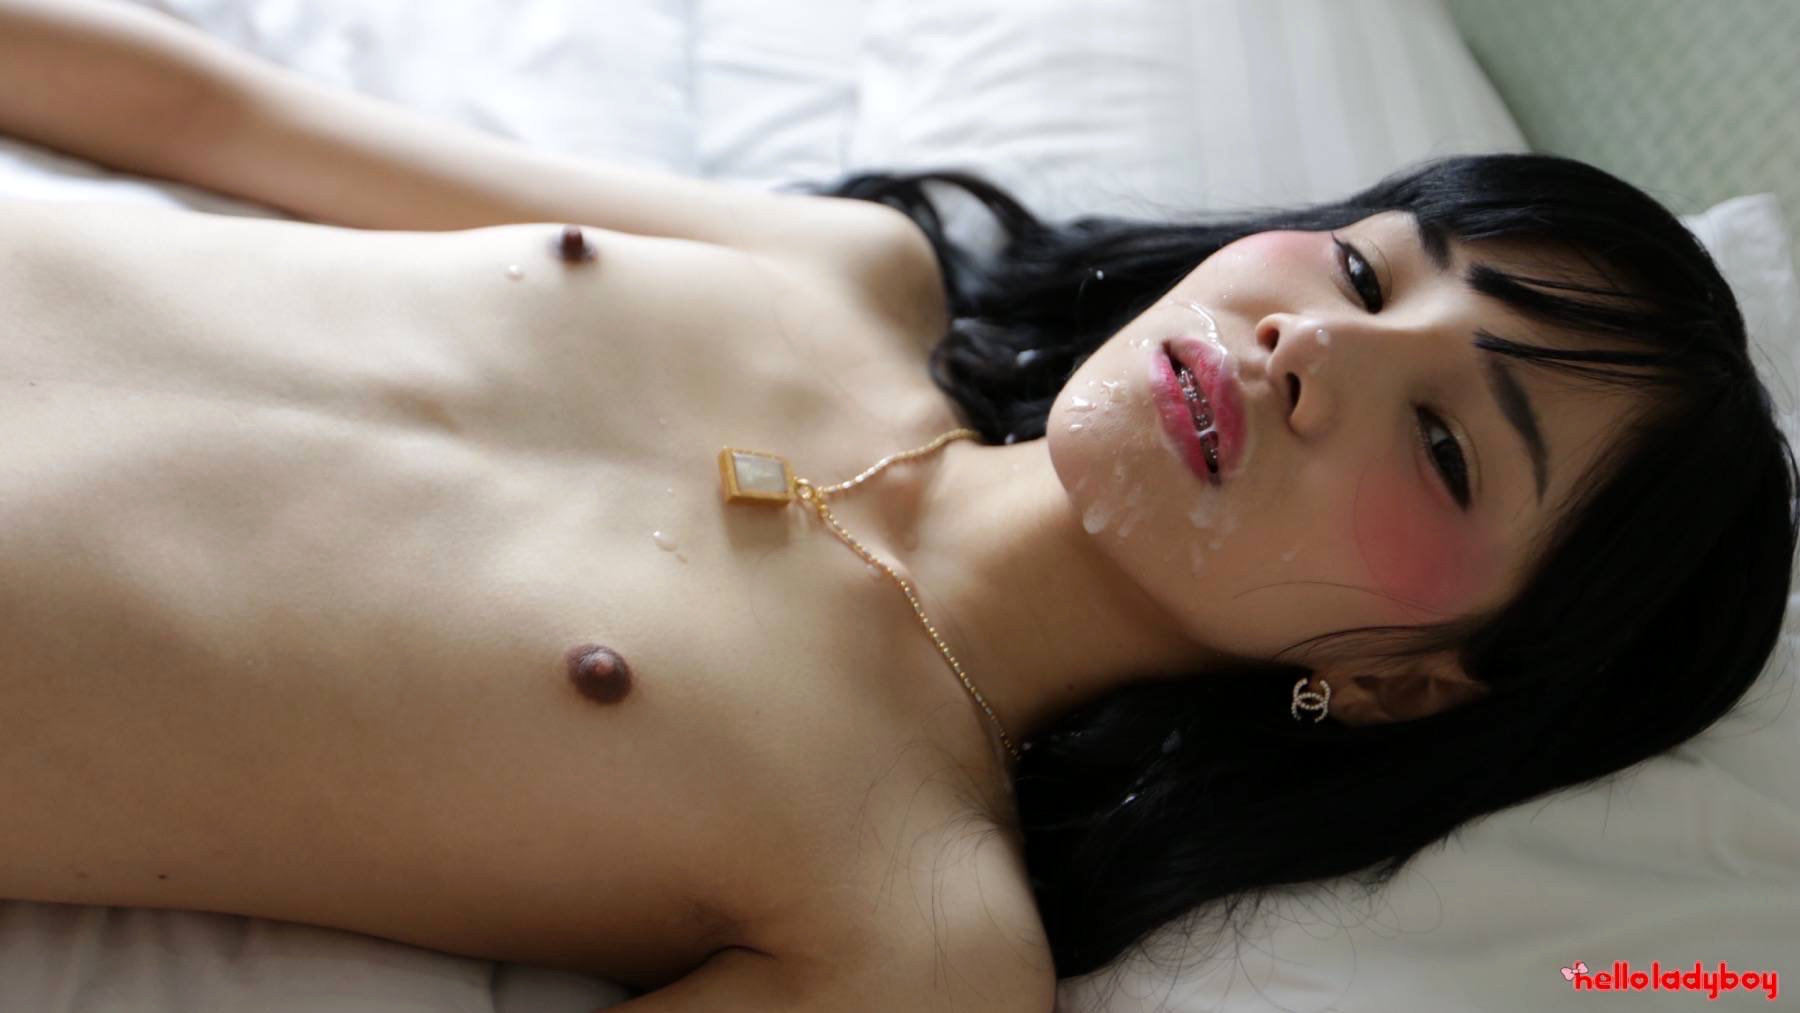 19 Year Old Asian Shemale Blowjob And Facial From White Tool